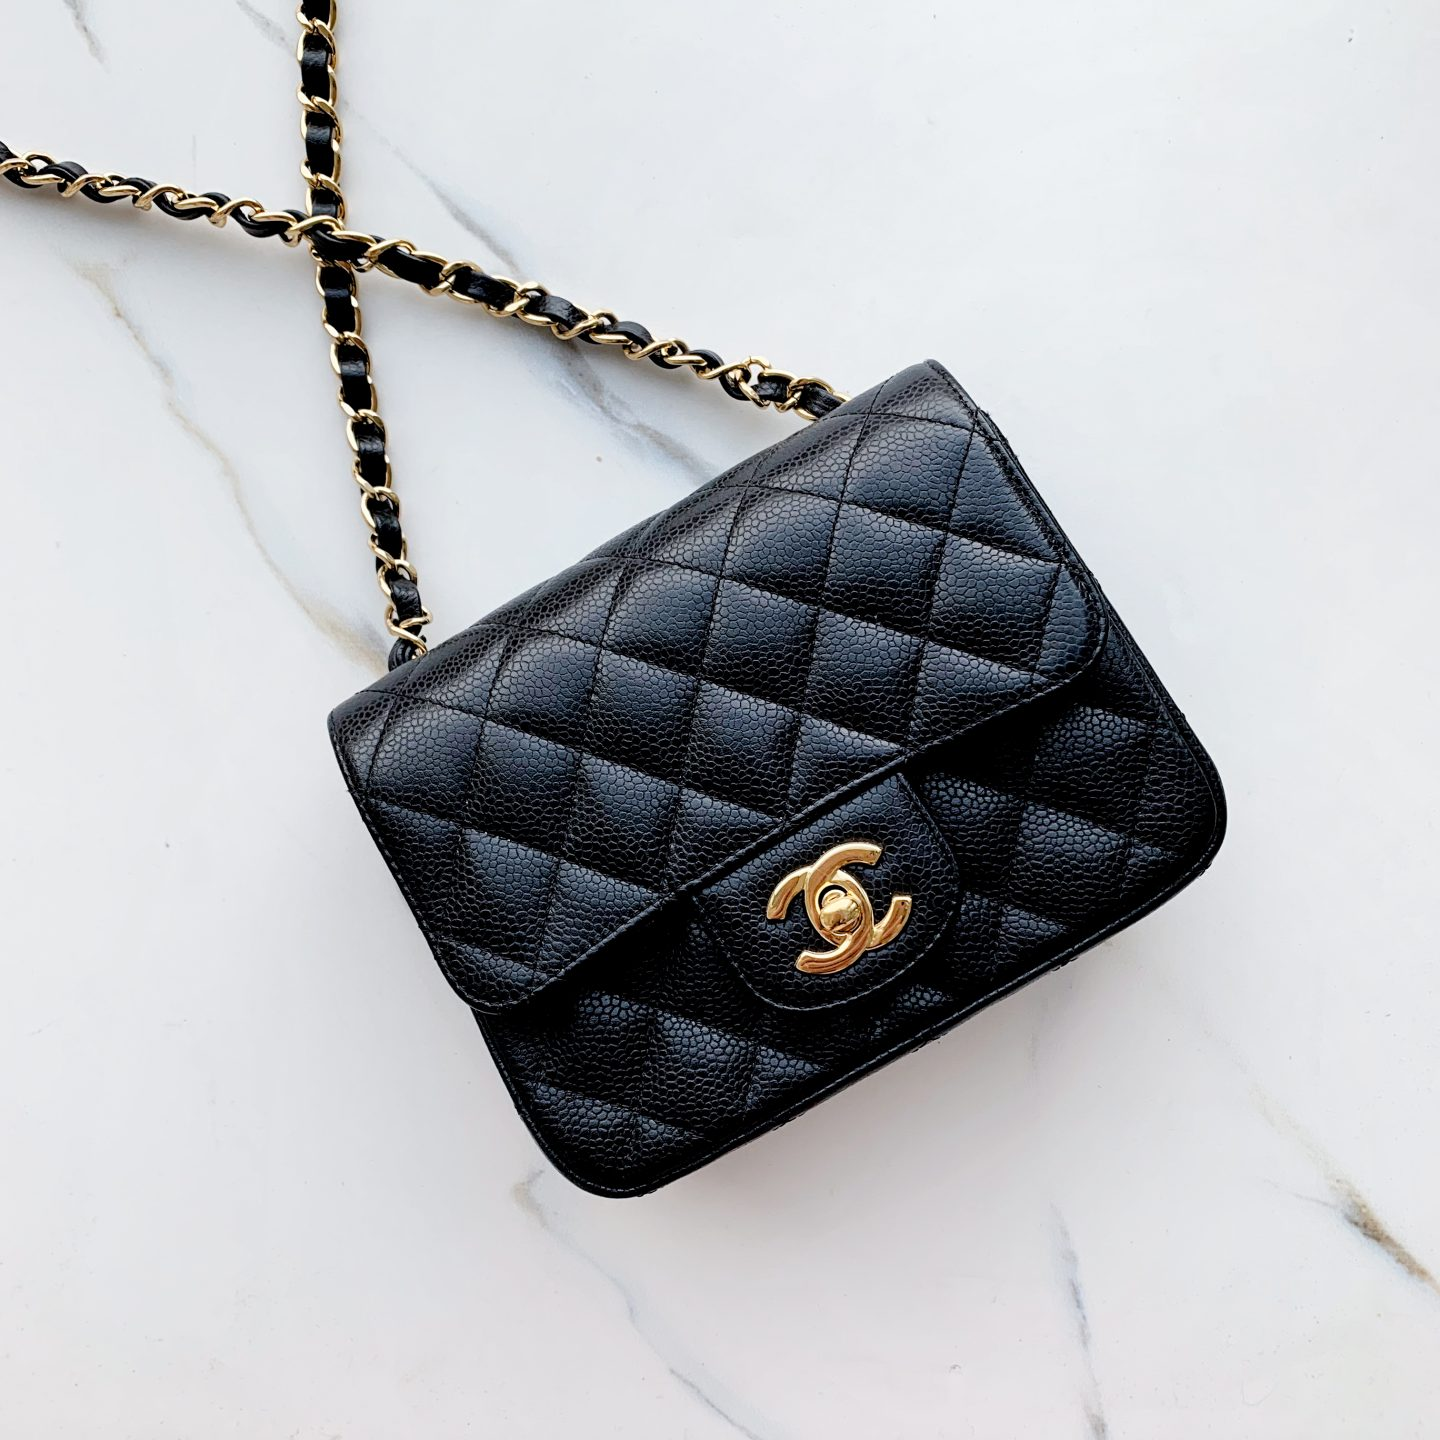 c8cc8984bfc5fb Leather and colour are also important factors to consider when deciding on  your first Chanel bag. Chanel offer many different varieties however the  two most ...